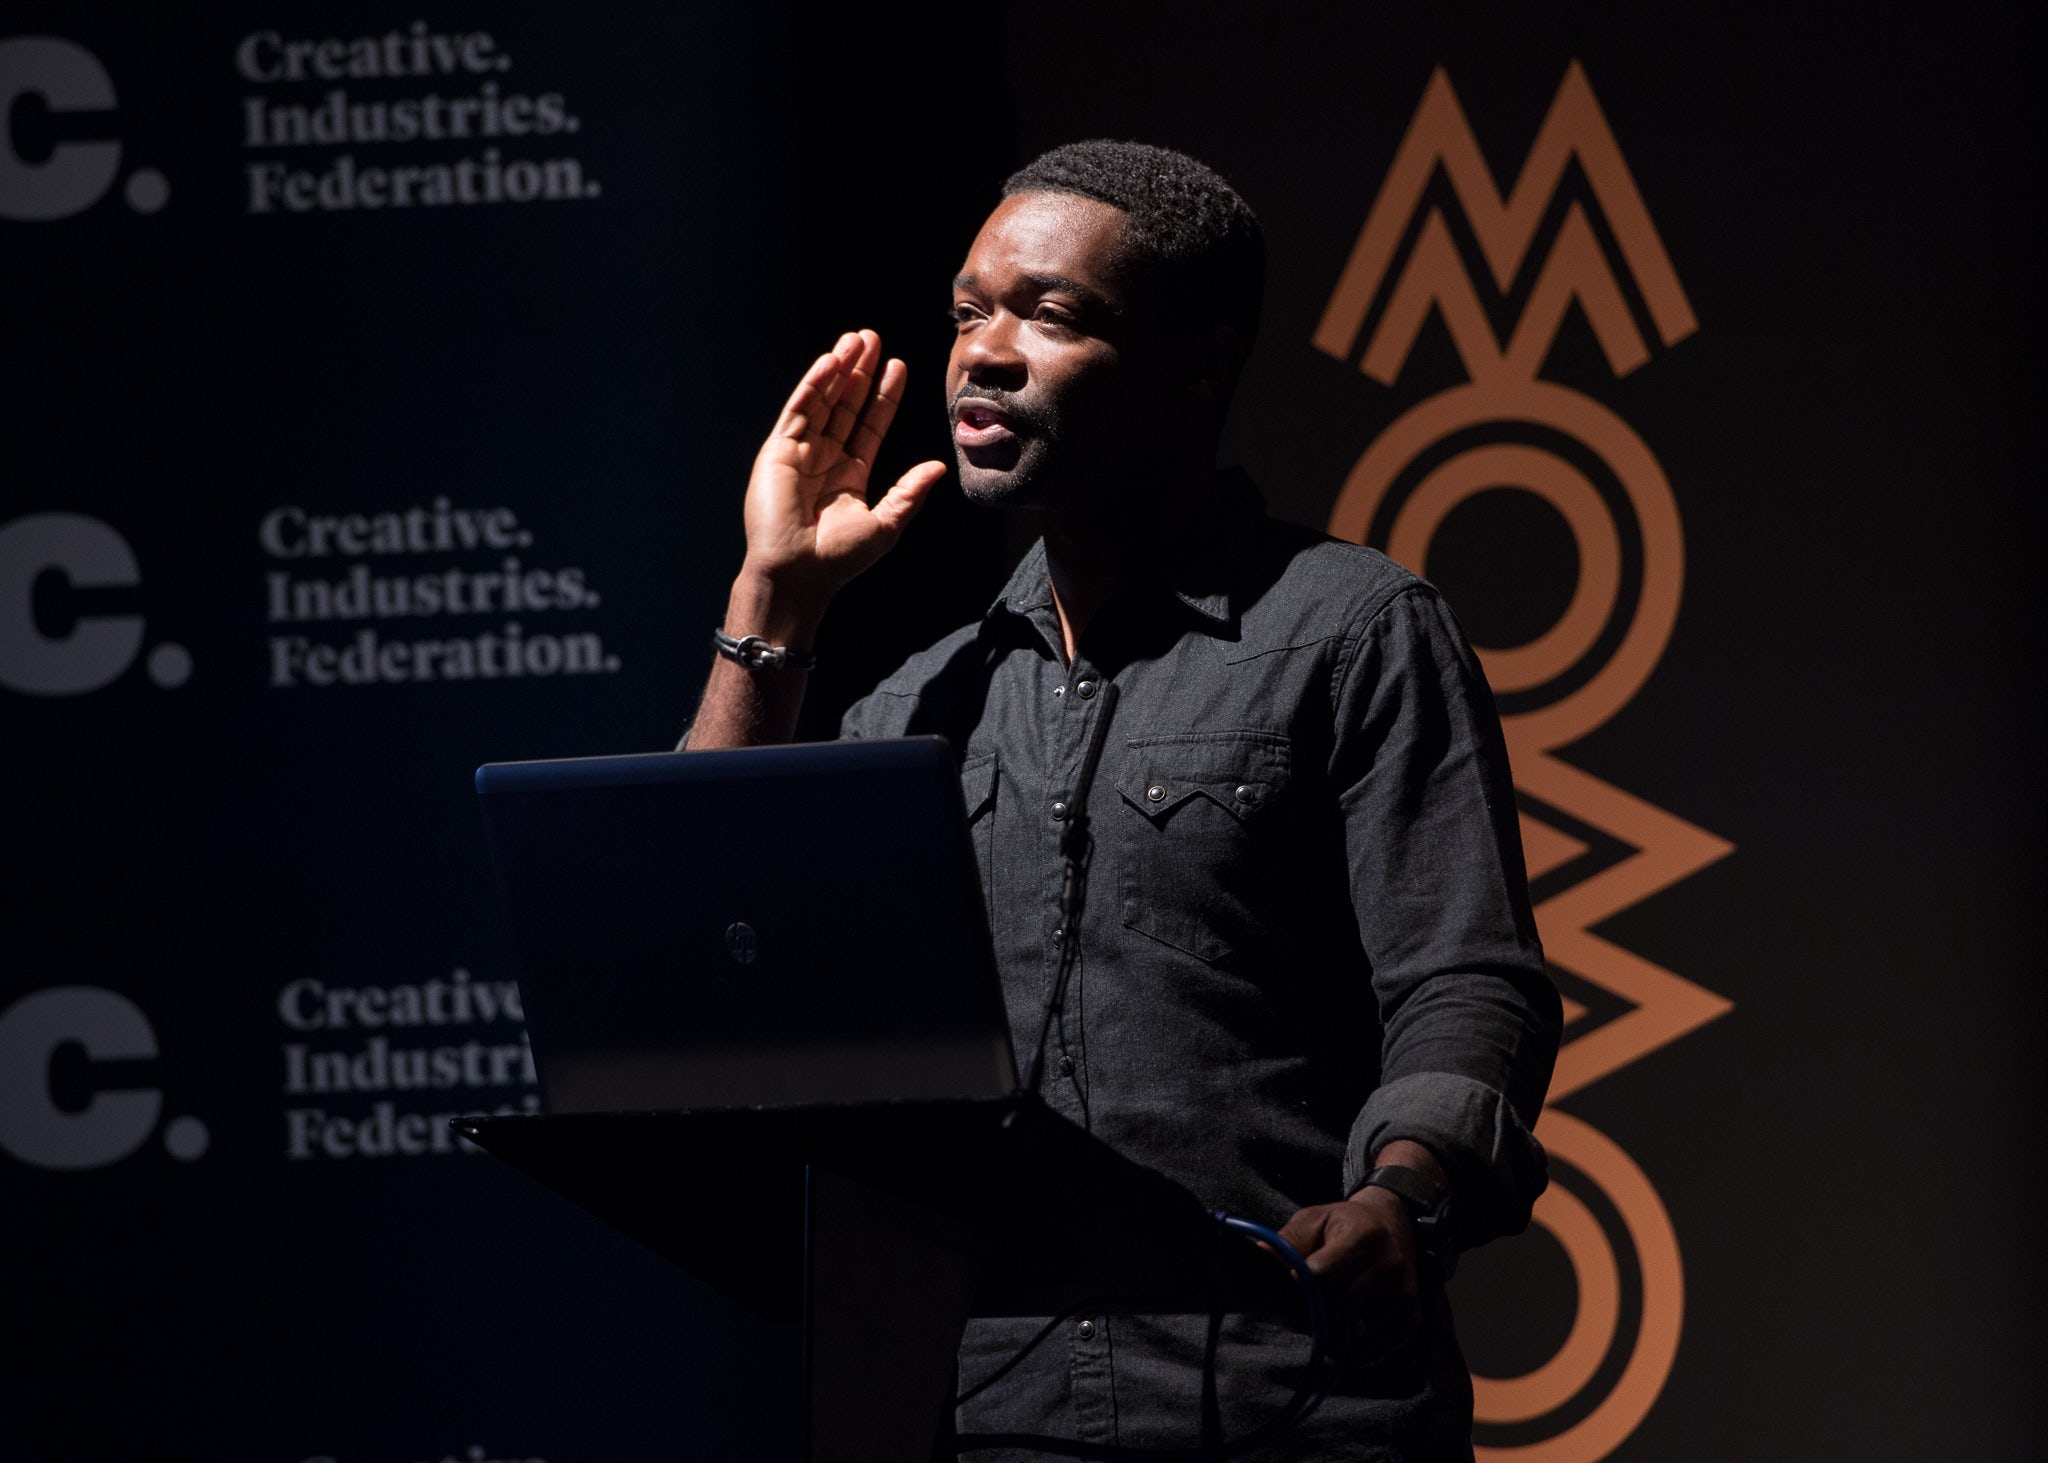 Actor David Oyelowo speaks at MOBO and CIF's event on diversity in the creative industries